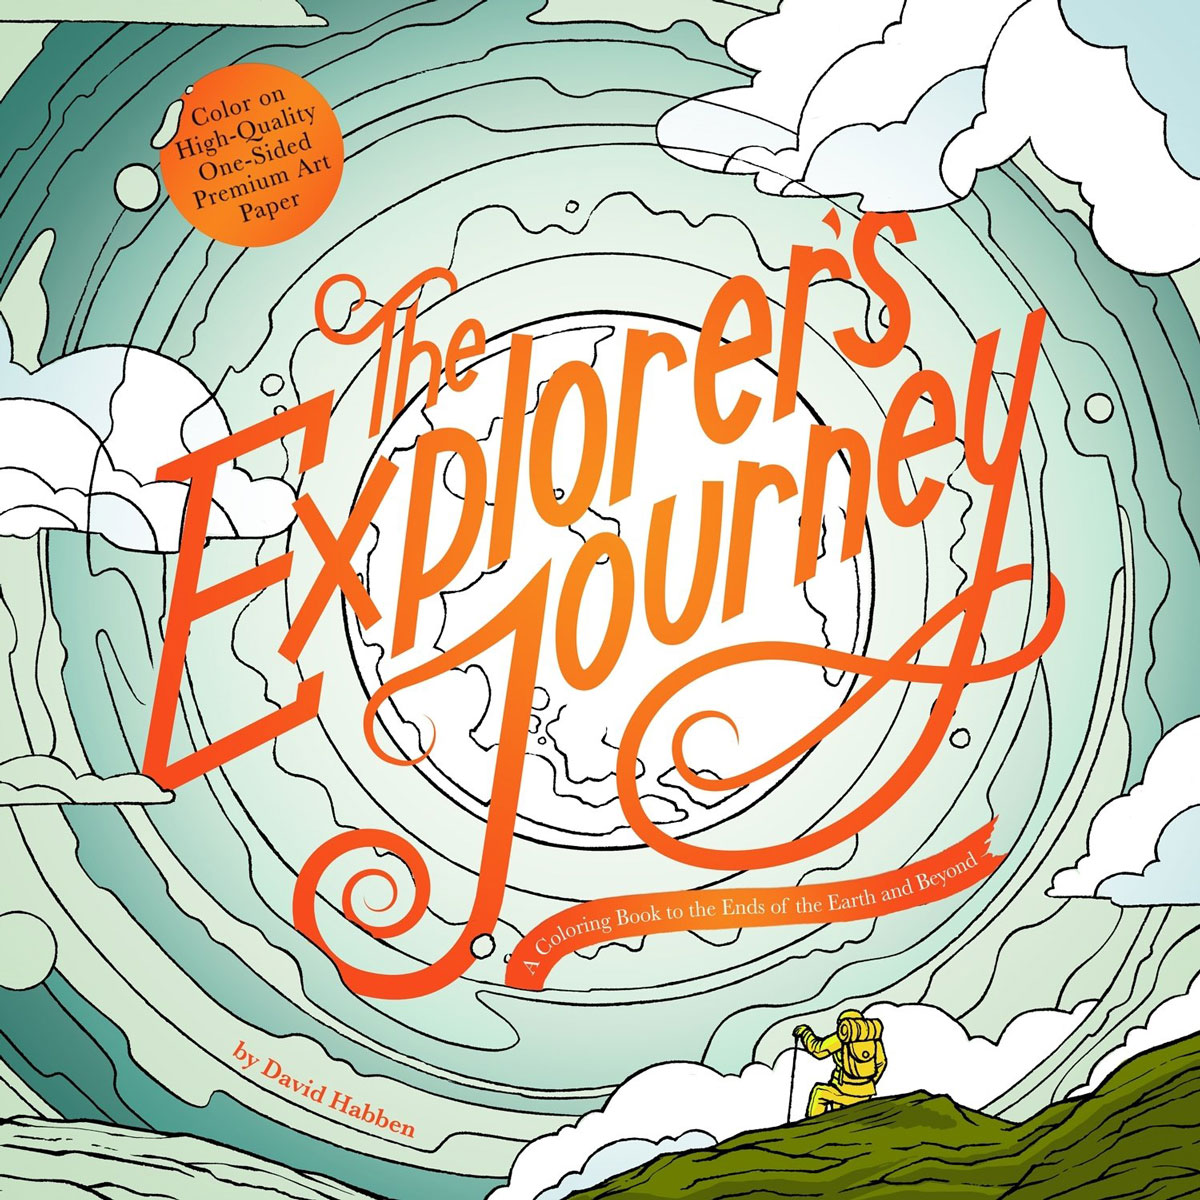 The Explorer's Journey: A Coloring Book to the Ends of the Earth and Beyond verne j journey to the centre of the earth